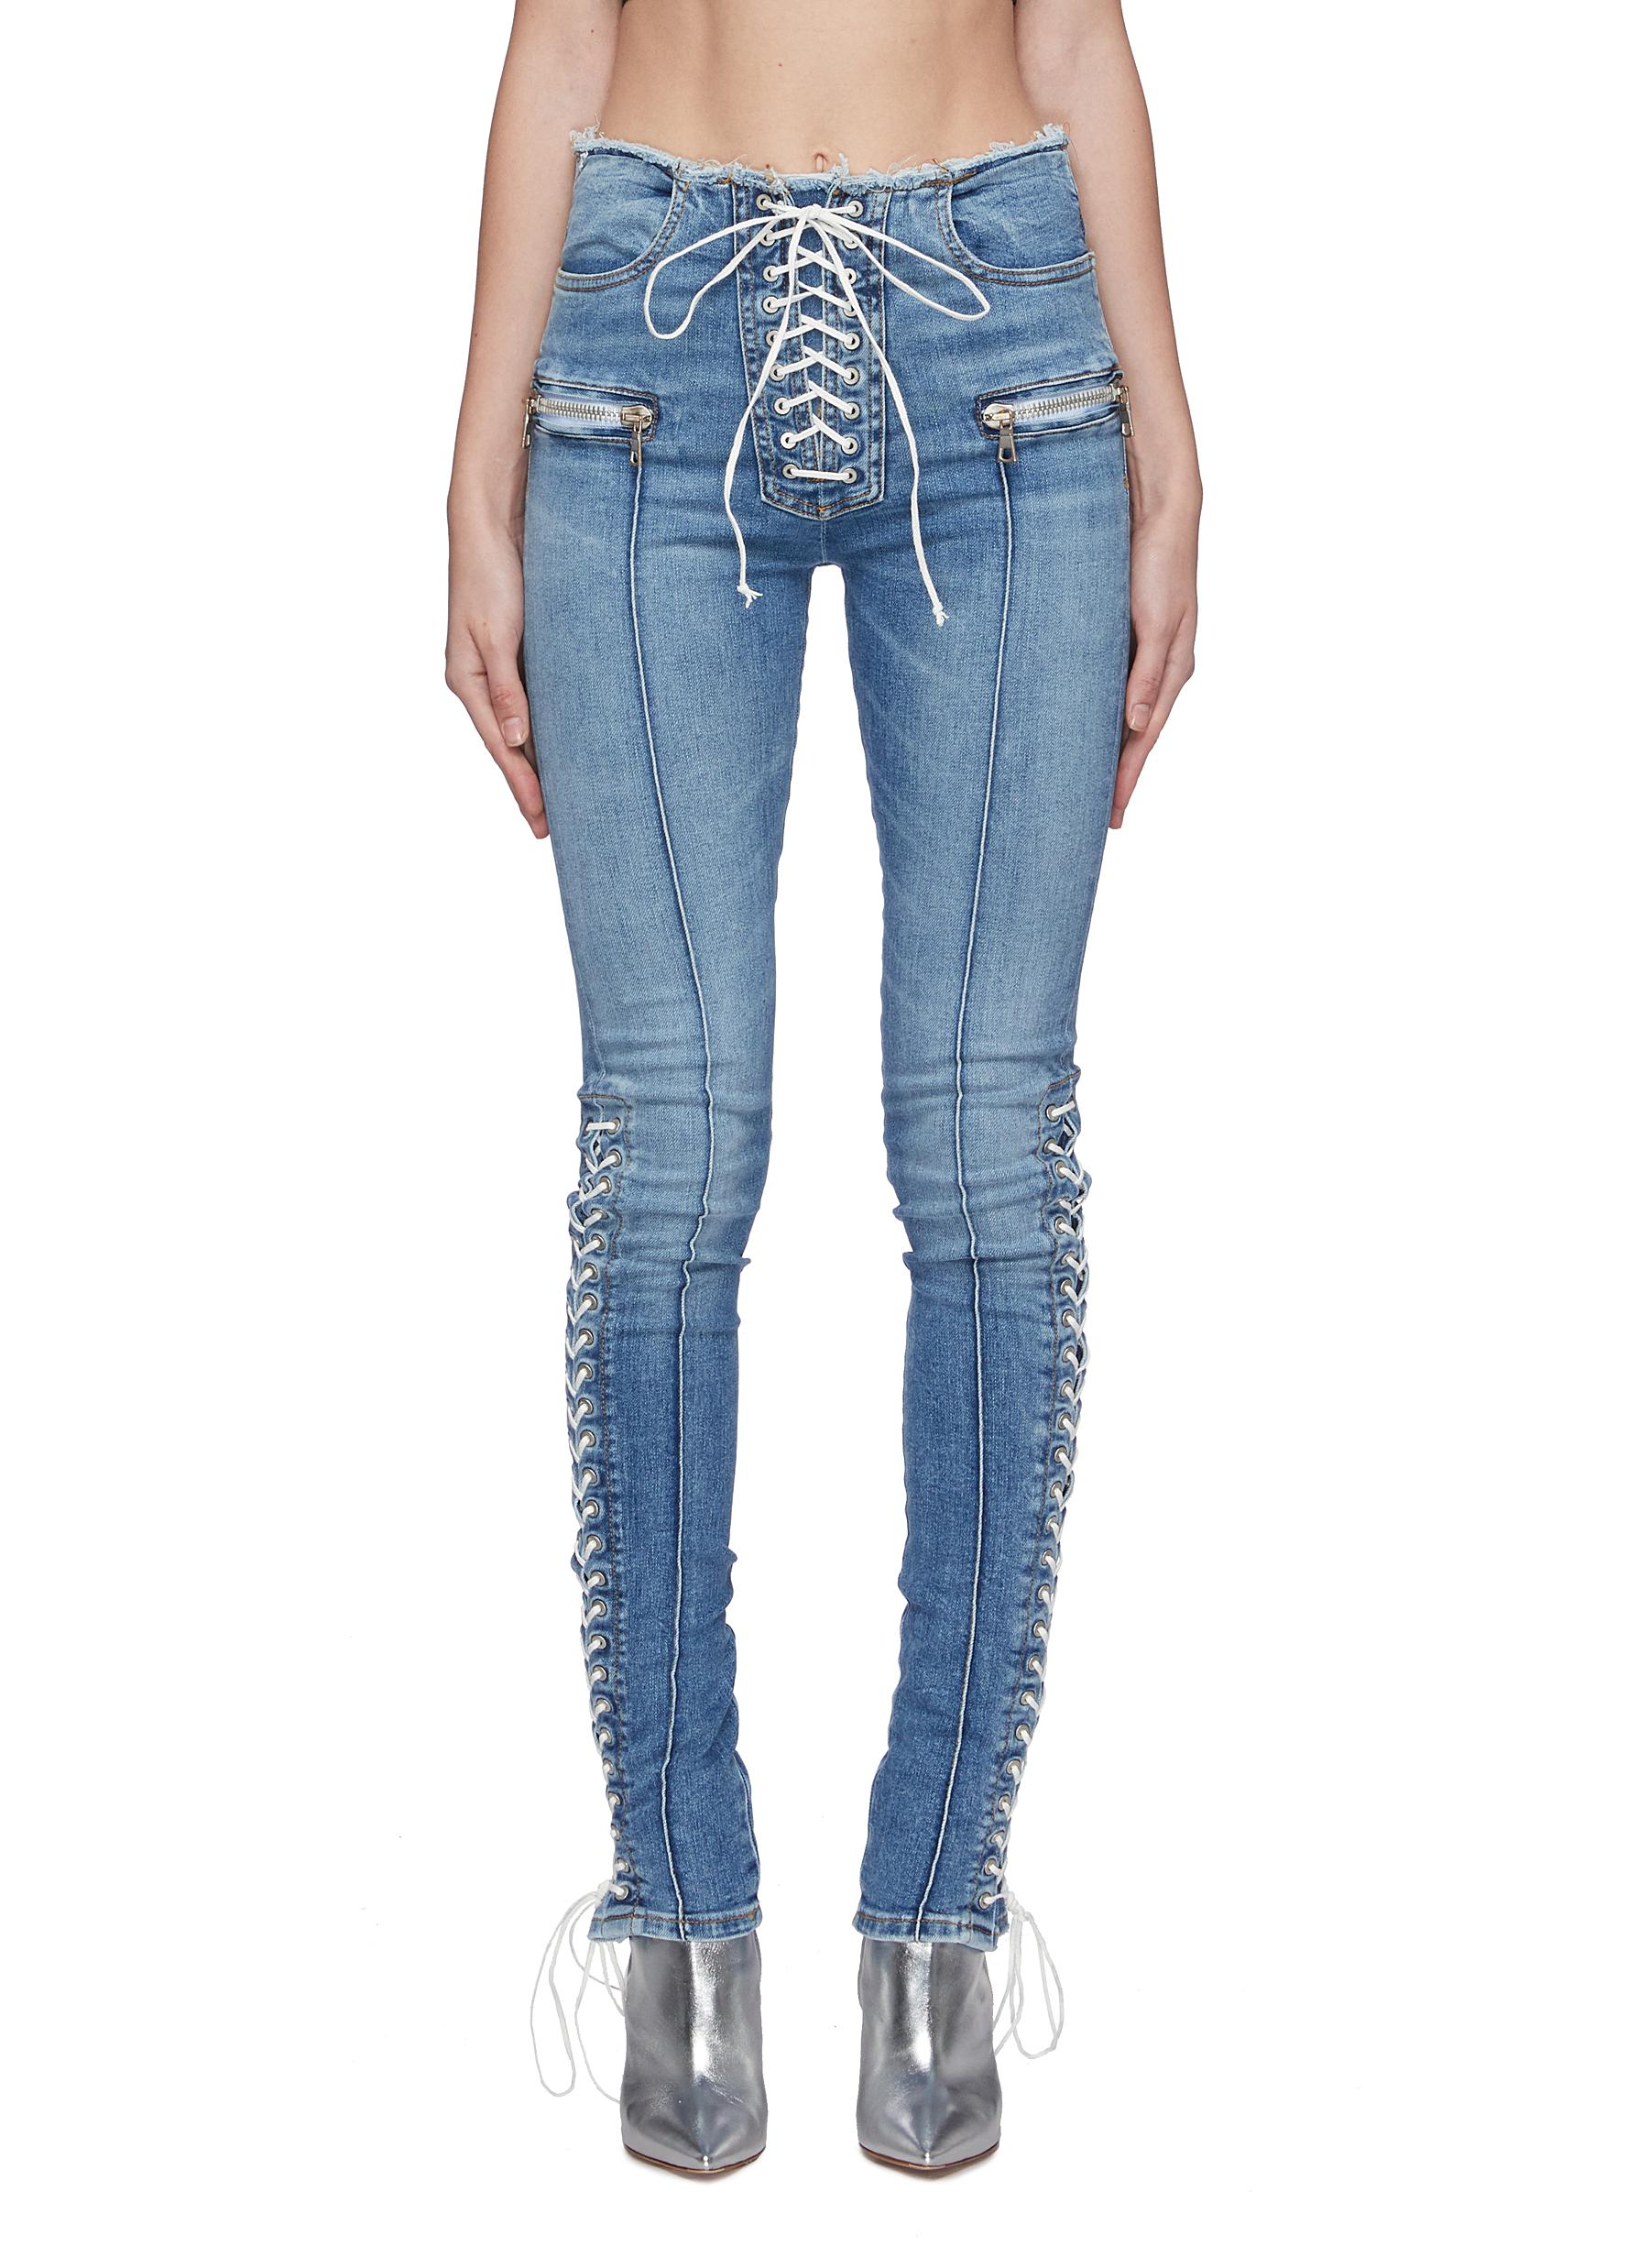 Lace-up skinny jeans by Ben Taverniti Unravel Project